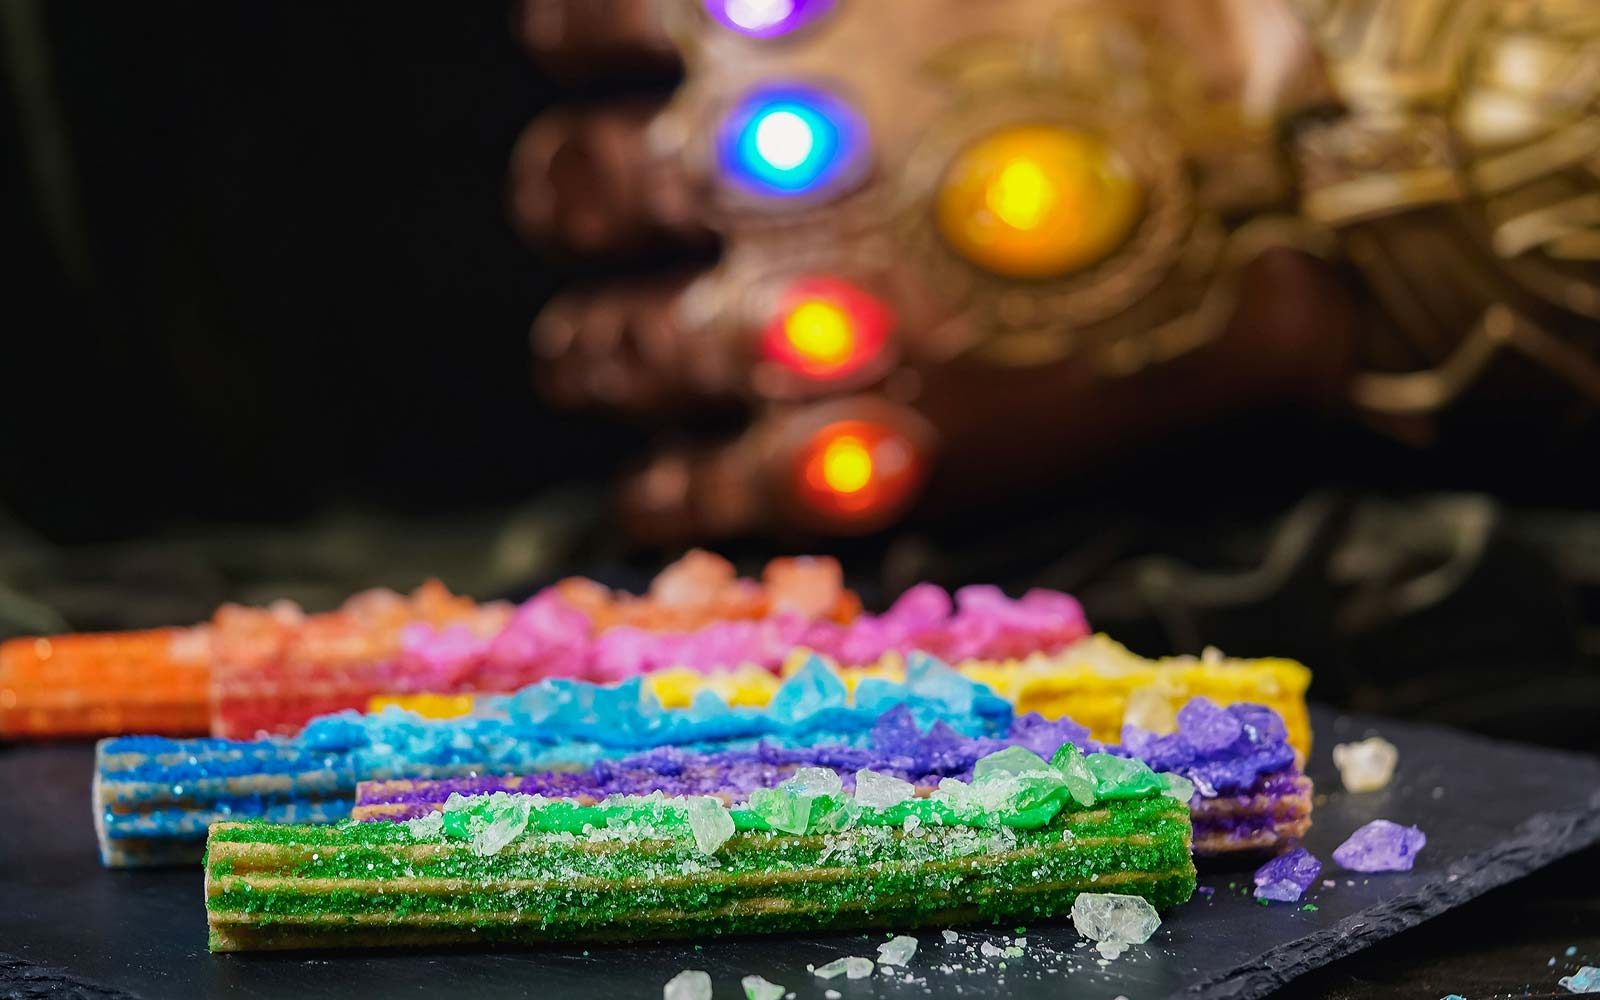 Disneyland's Rainbow Rock Candy Churros Look Out of This World